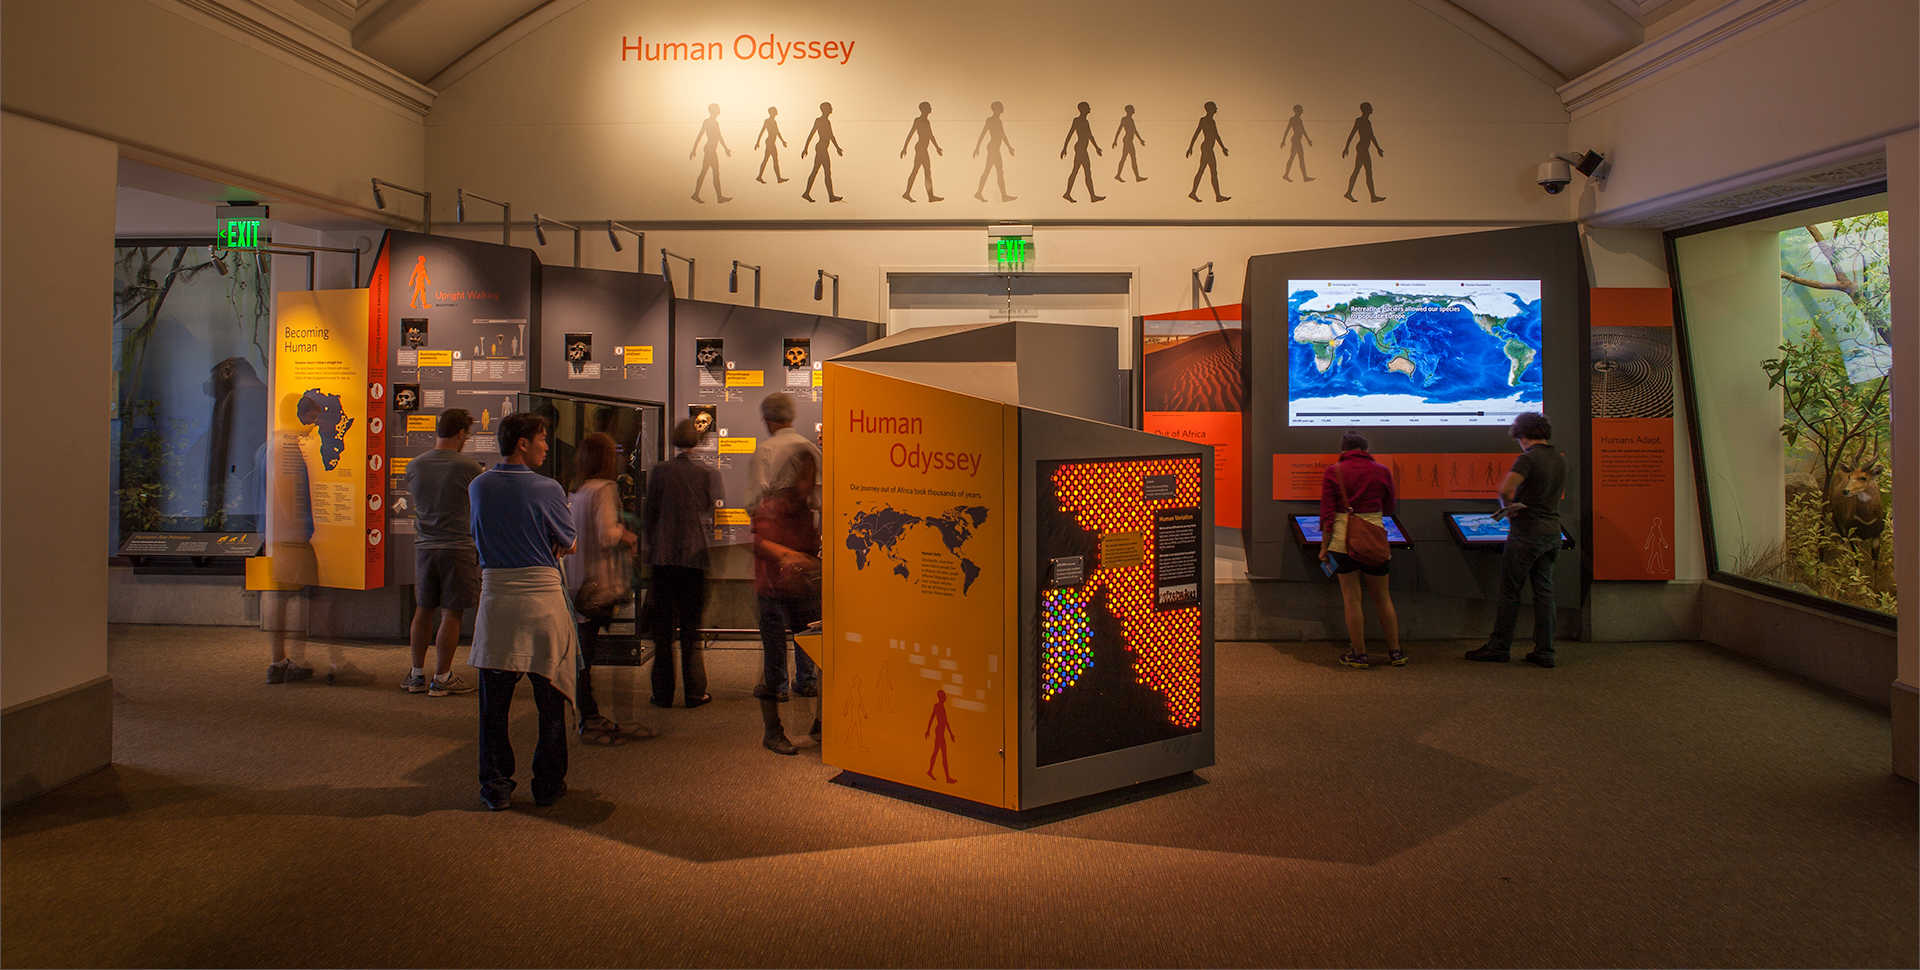 Visitors explore the Human Odyssey exhibit.